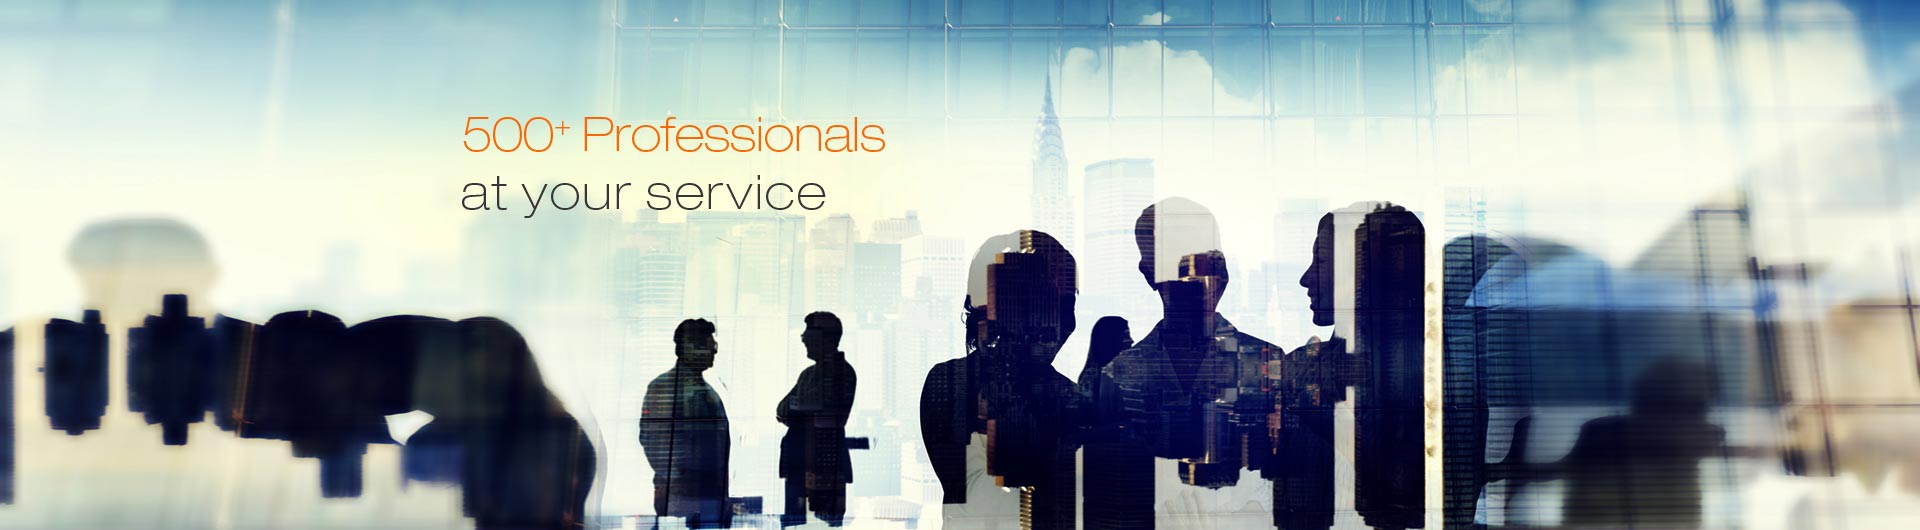 500 Plus professionals at your service